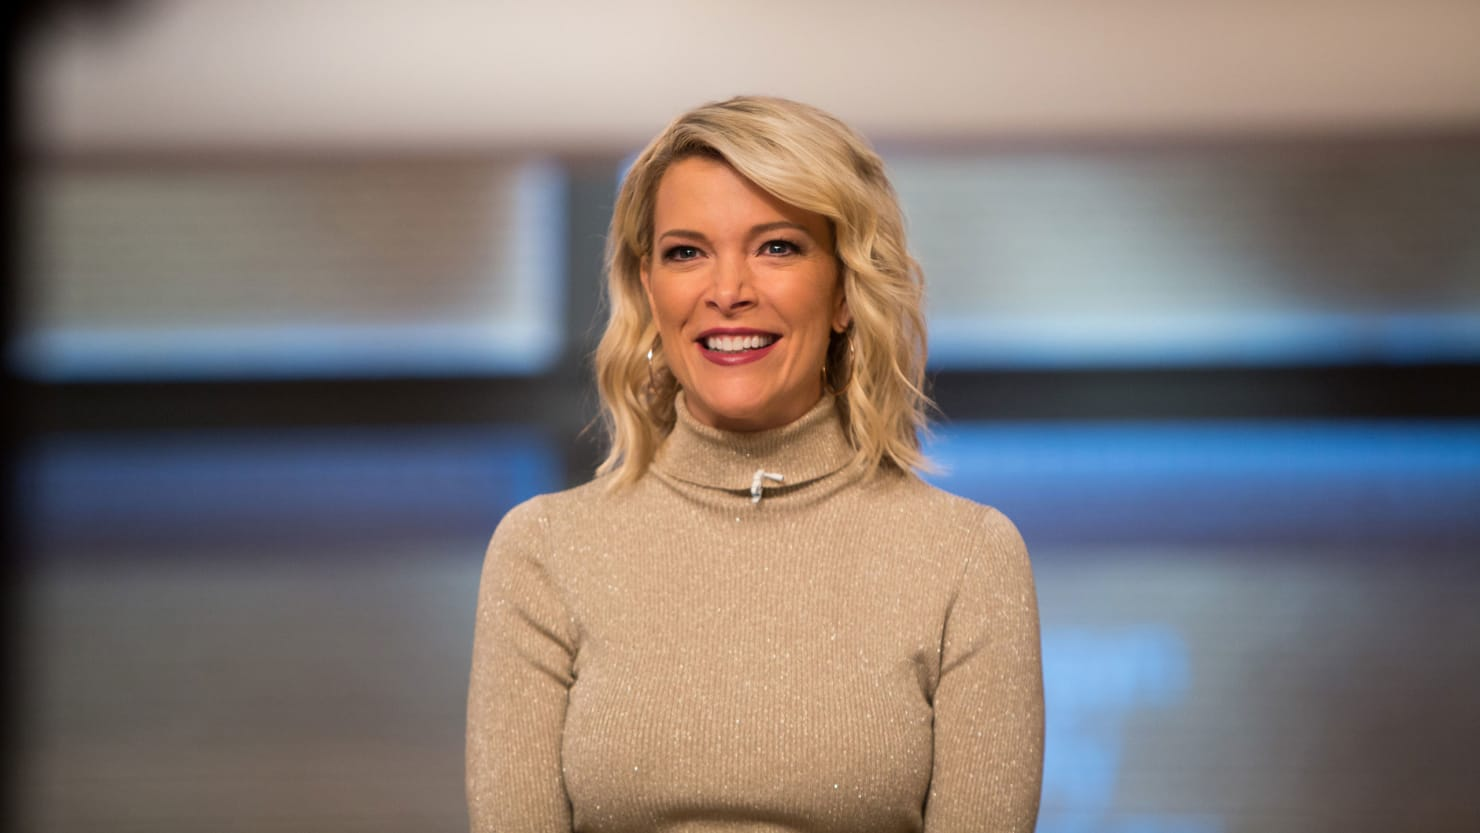 Images Megyn Kelly nude photos 2019